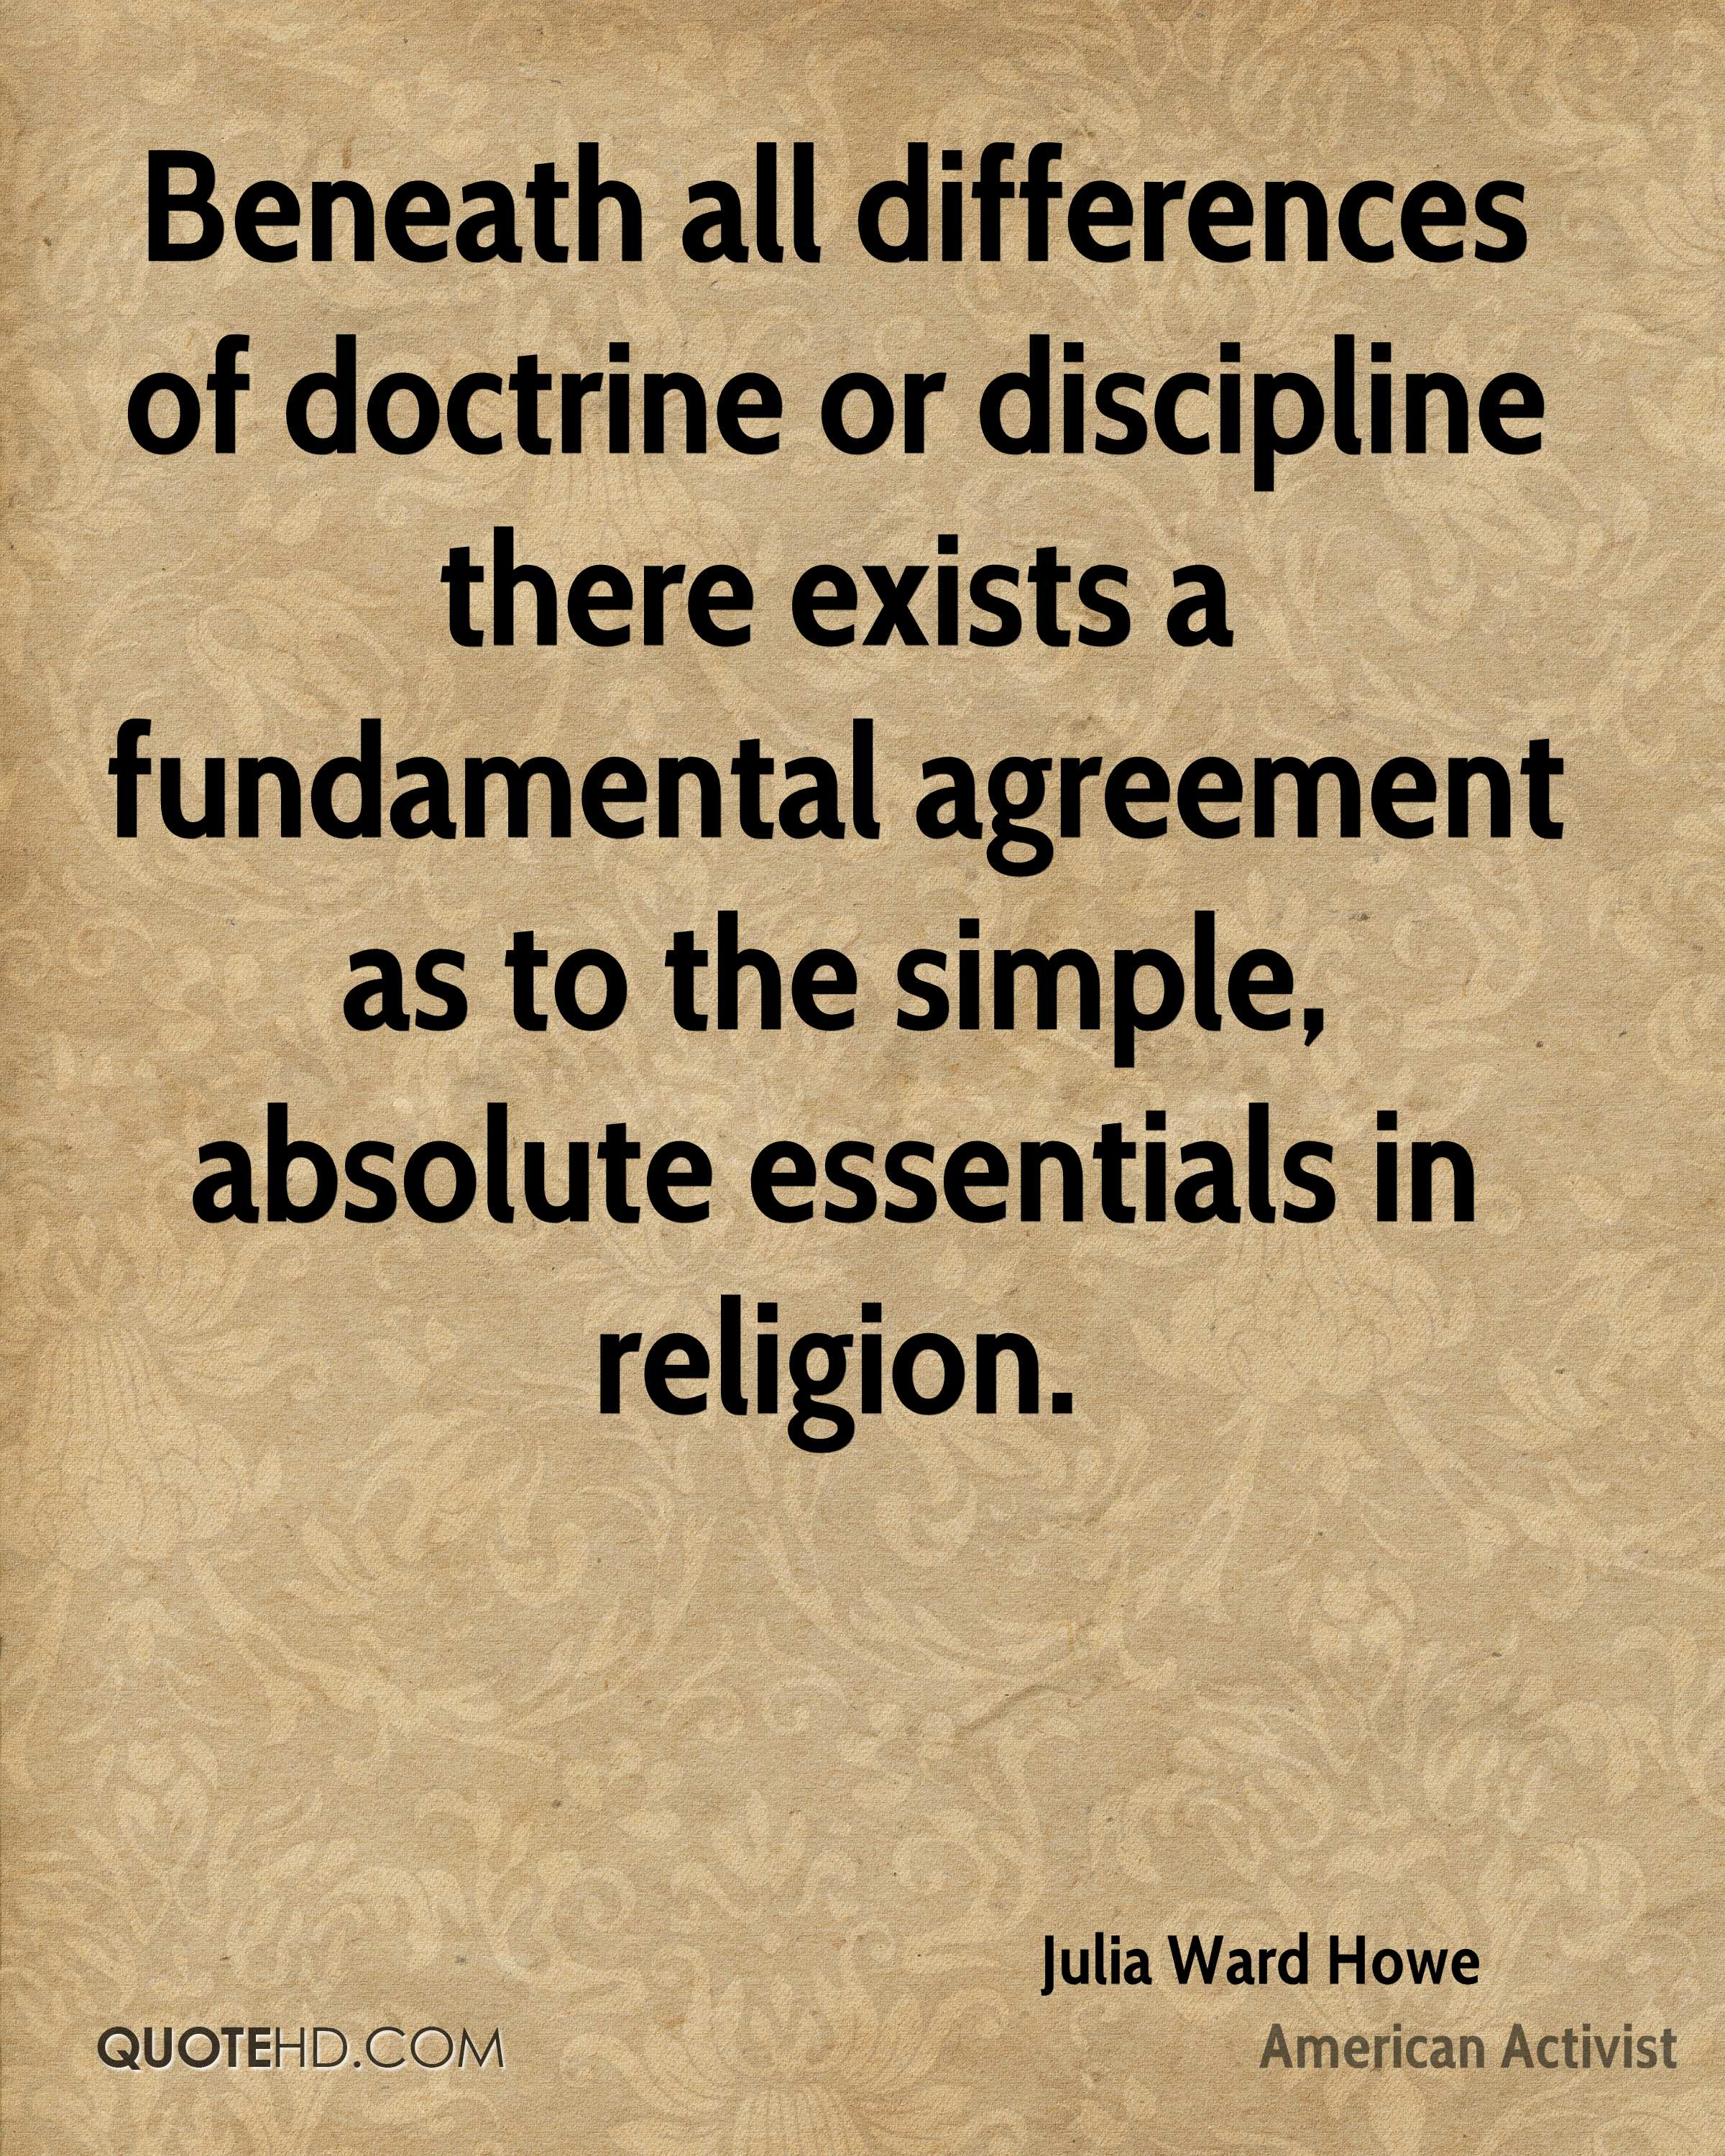 Beneath all differences of doctrine or discipline there exists a fundamental agreement as to the simple, absolute essentials in religion.